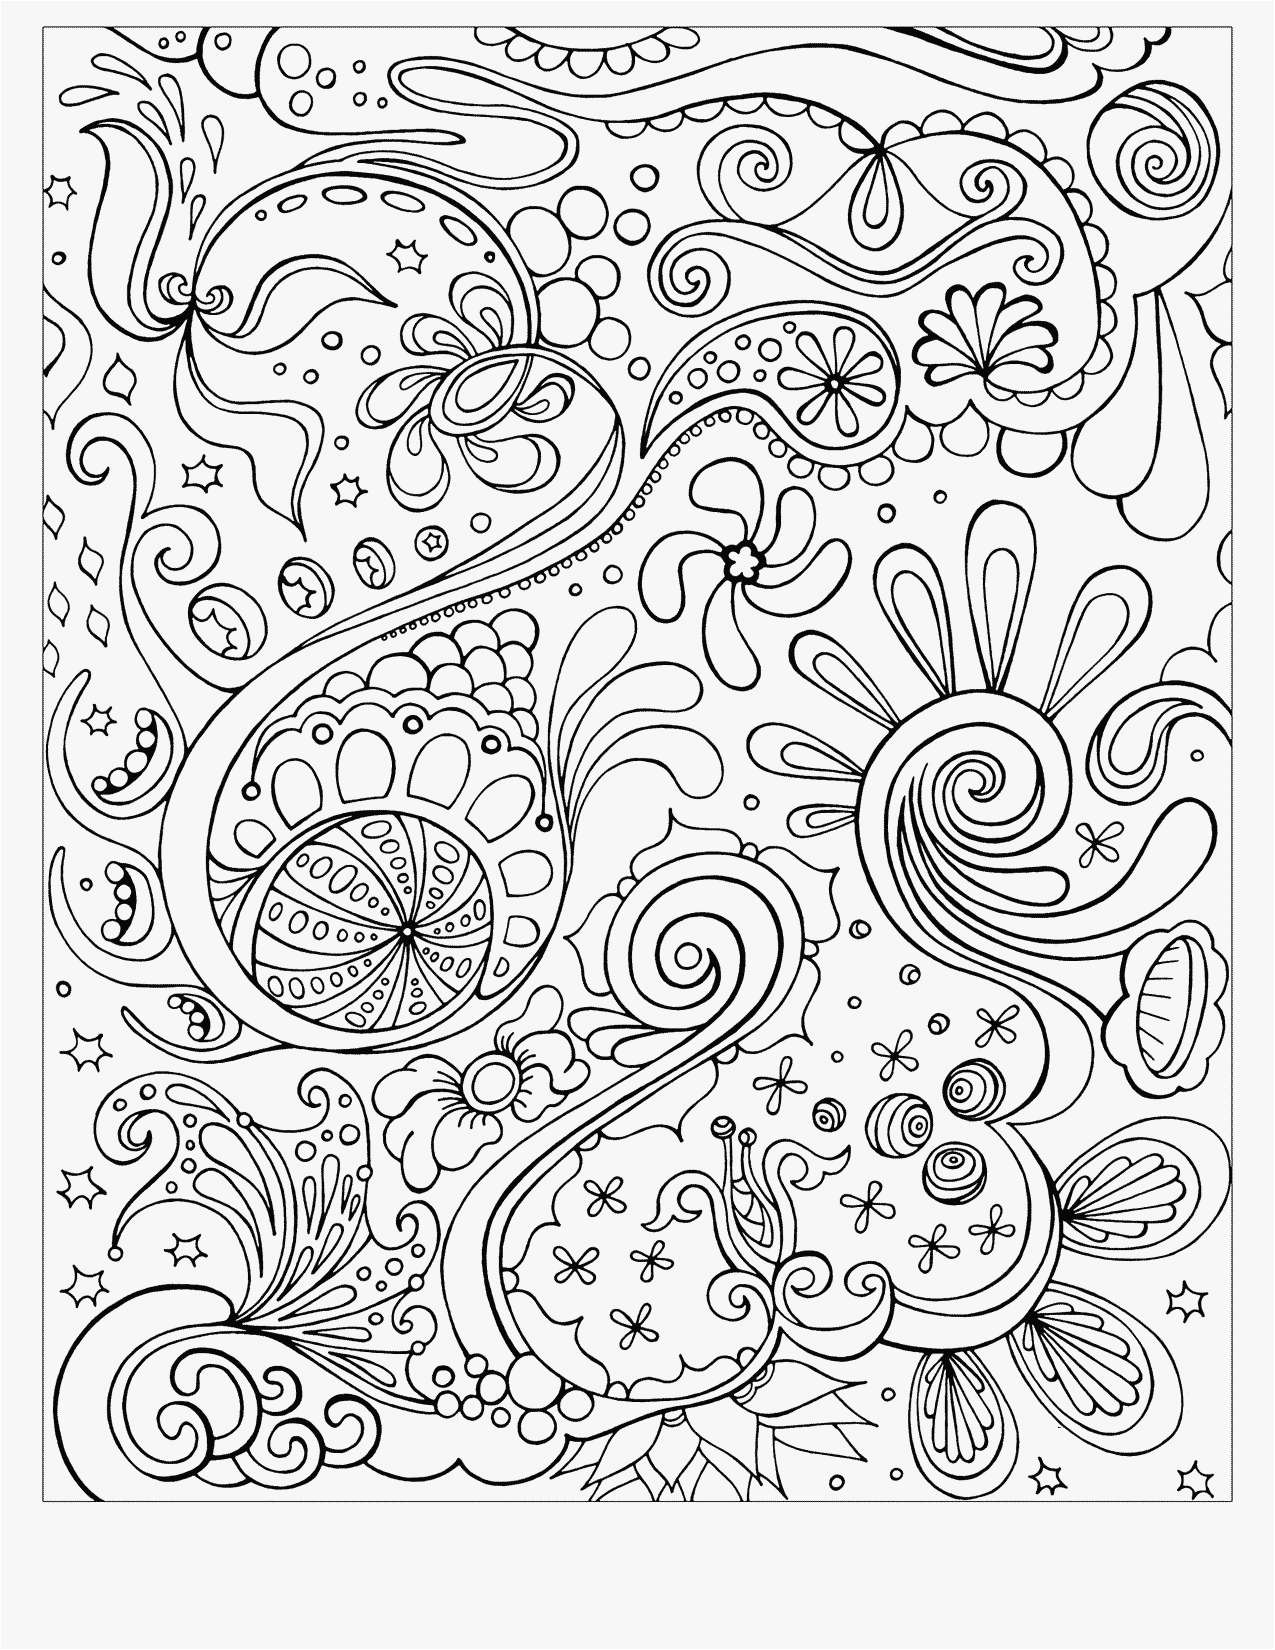 bible coloring pages for kids Collection-Free Bible Coloring Pages for Kids Inspirational Bible Coloring Pages for Kids Luxury Coloring Printables 0d 18-k